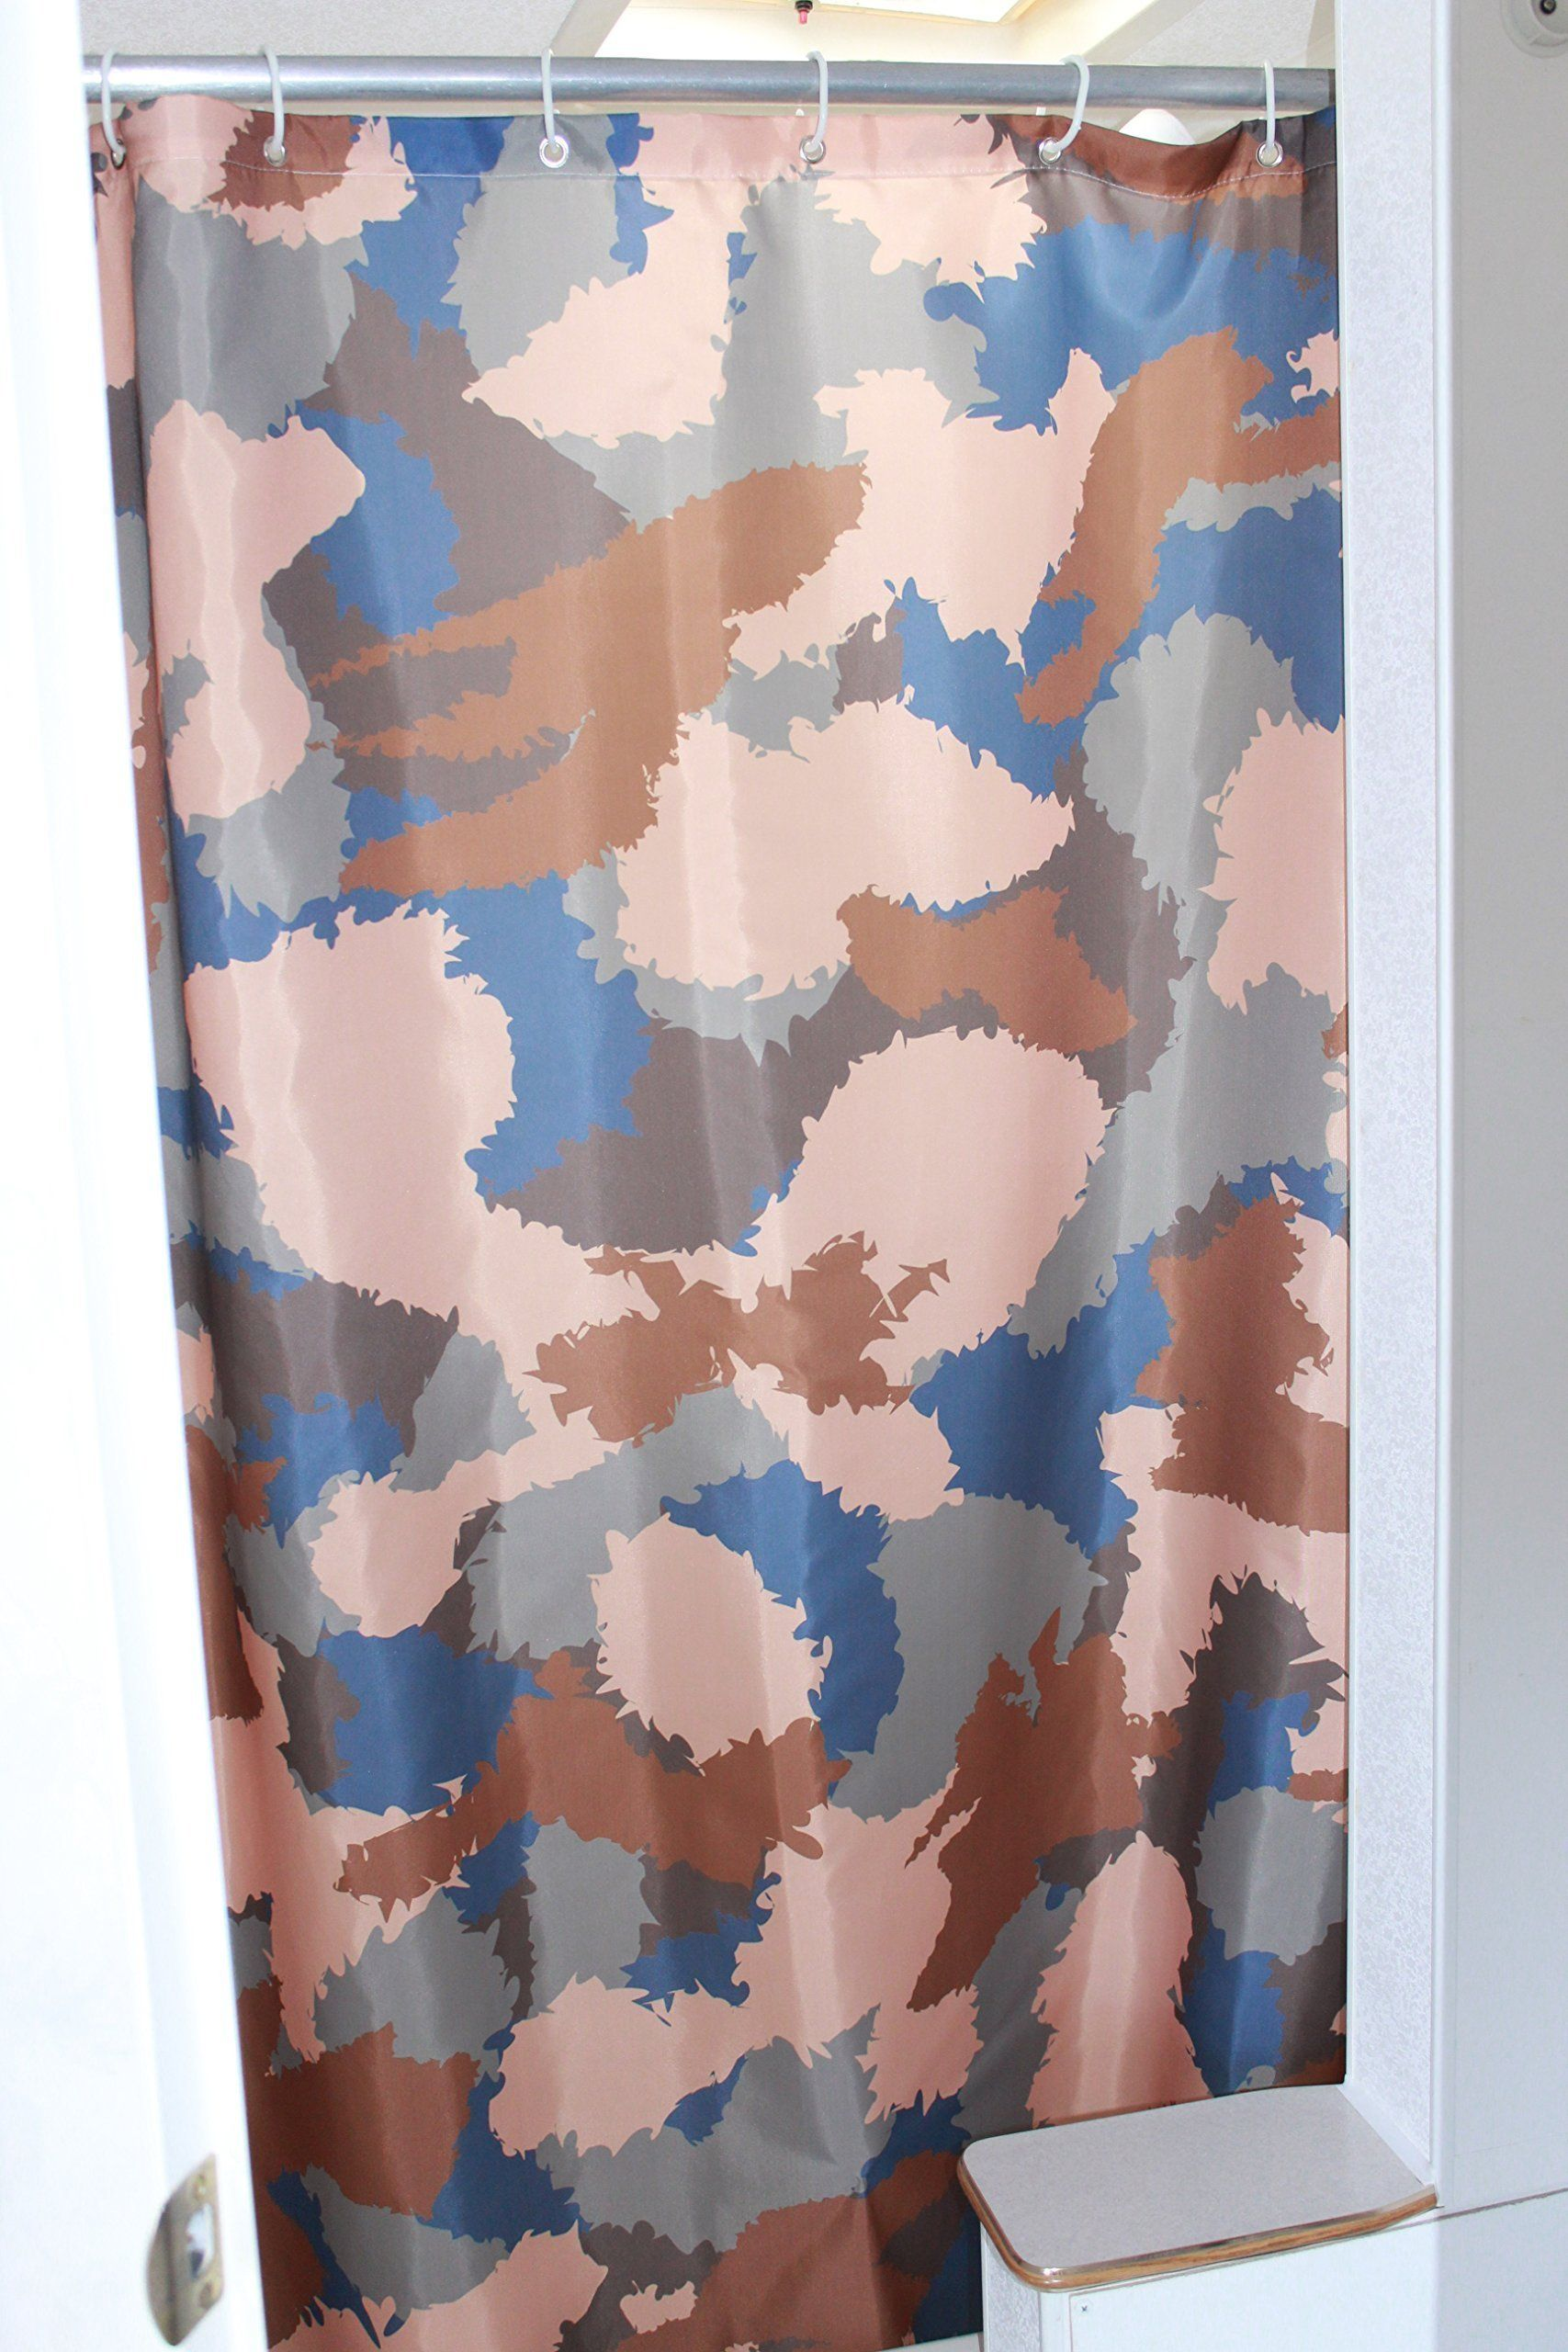 Solid Elements RV Shower Camo Curtain Accessories Gear For Camper Trailer Camping Bathroom Shorter And Narrow Sliding Camouflage Cloth With